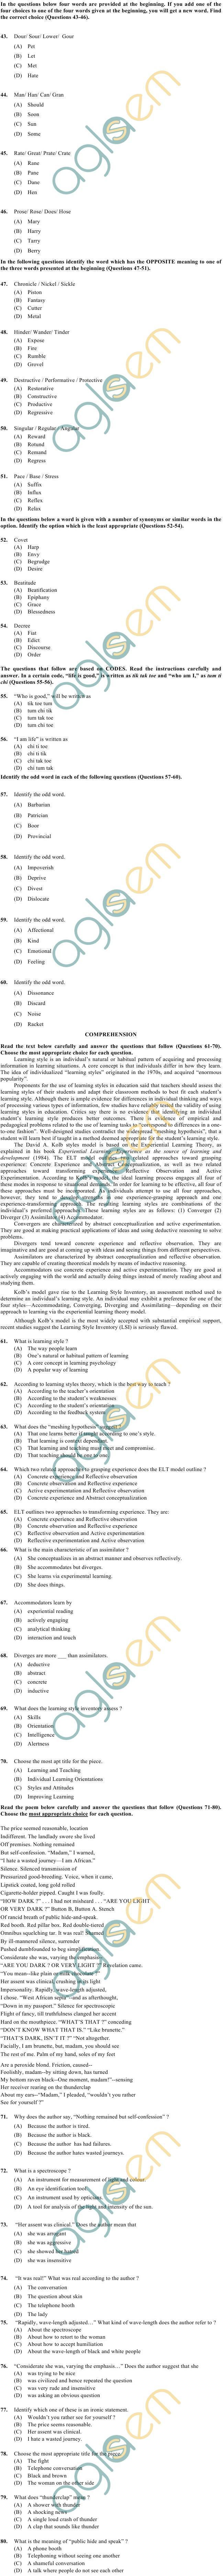 OJEE 2013 Question Paper for MBA